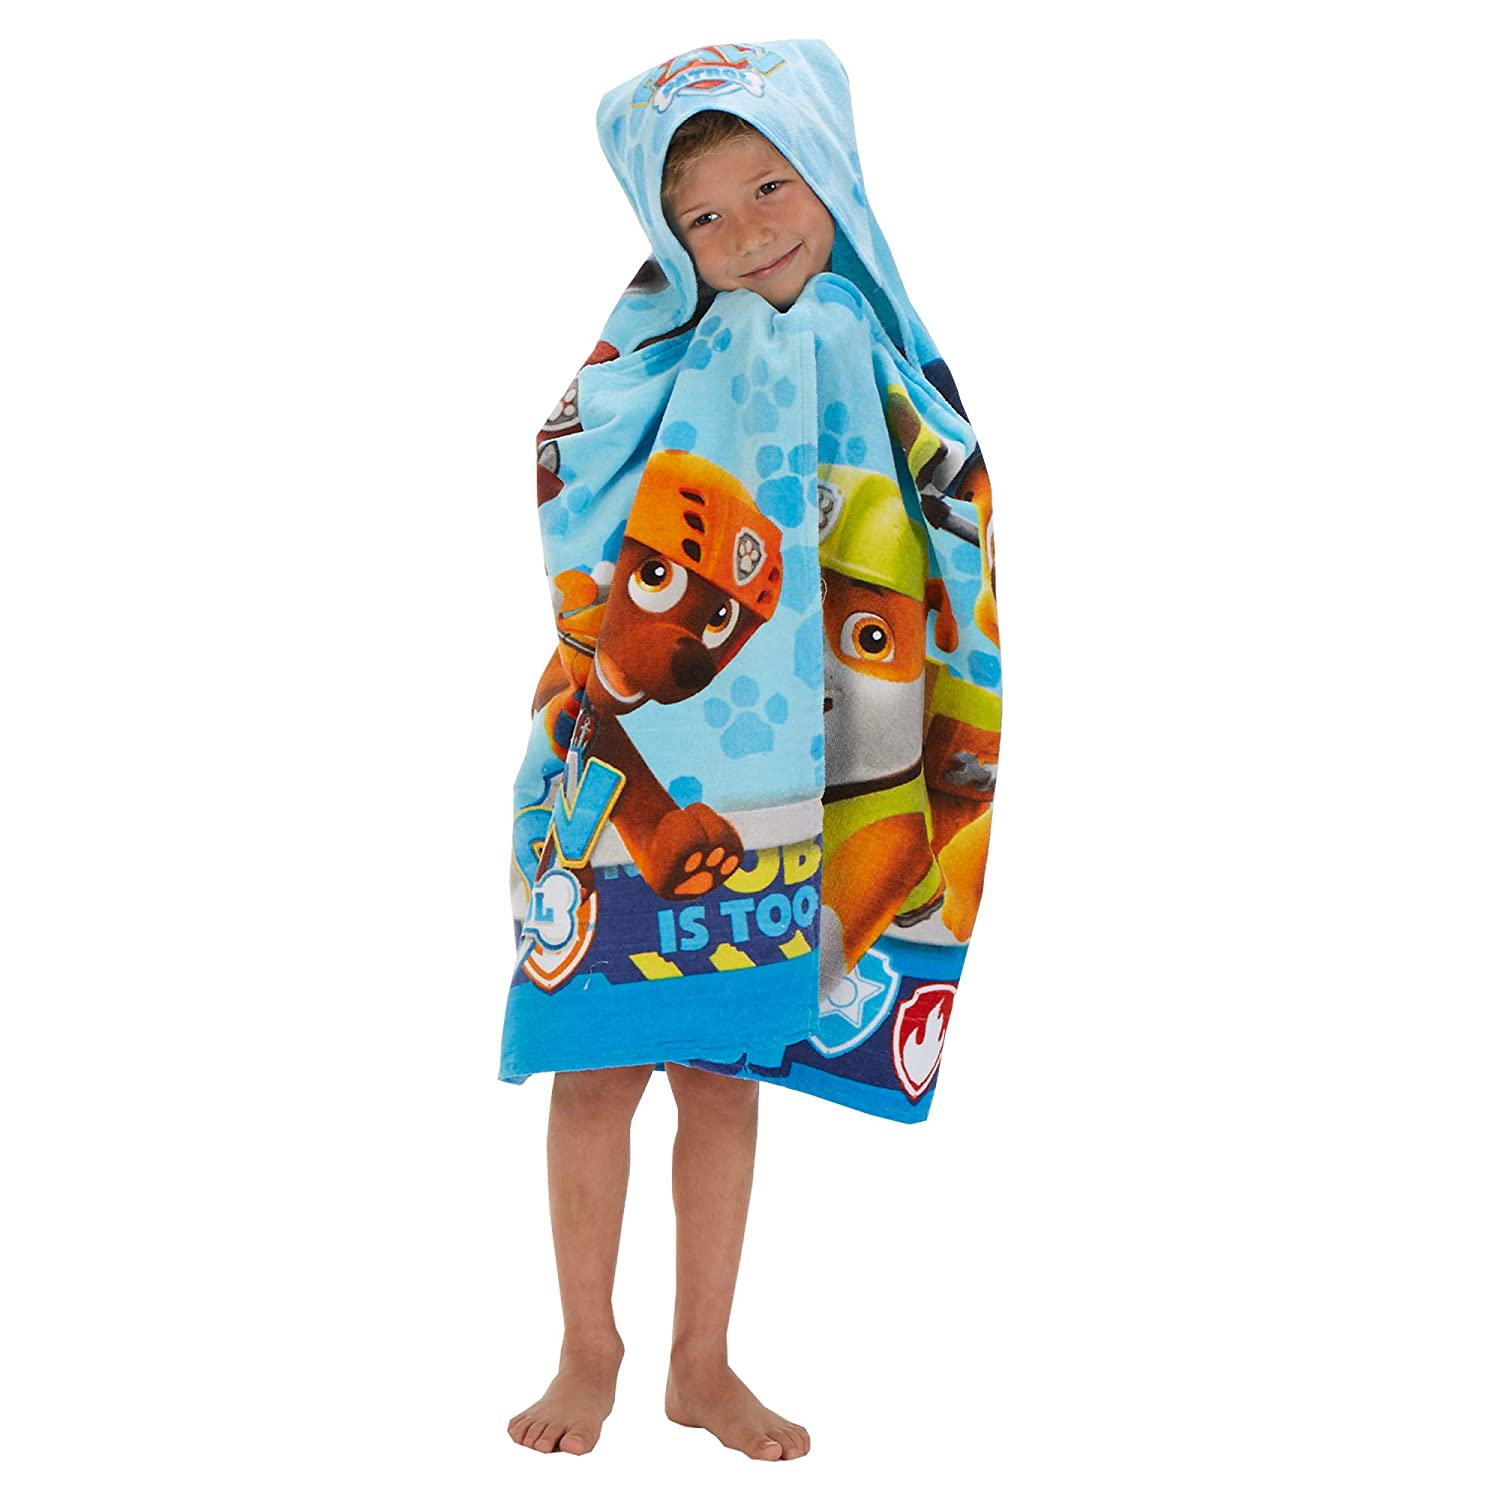 "Franco Kids Bath and Beach Soft Cotton Terry Hooded Towel Wrap, 24"" x 50"", Paw Patrol Blue"